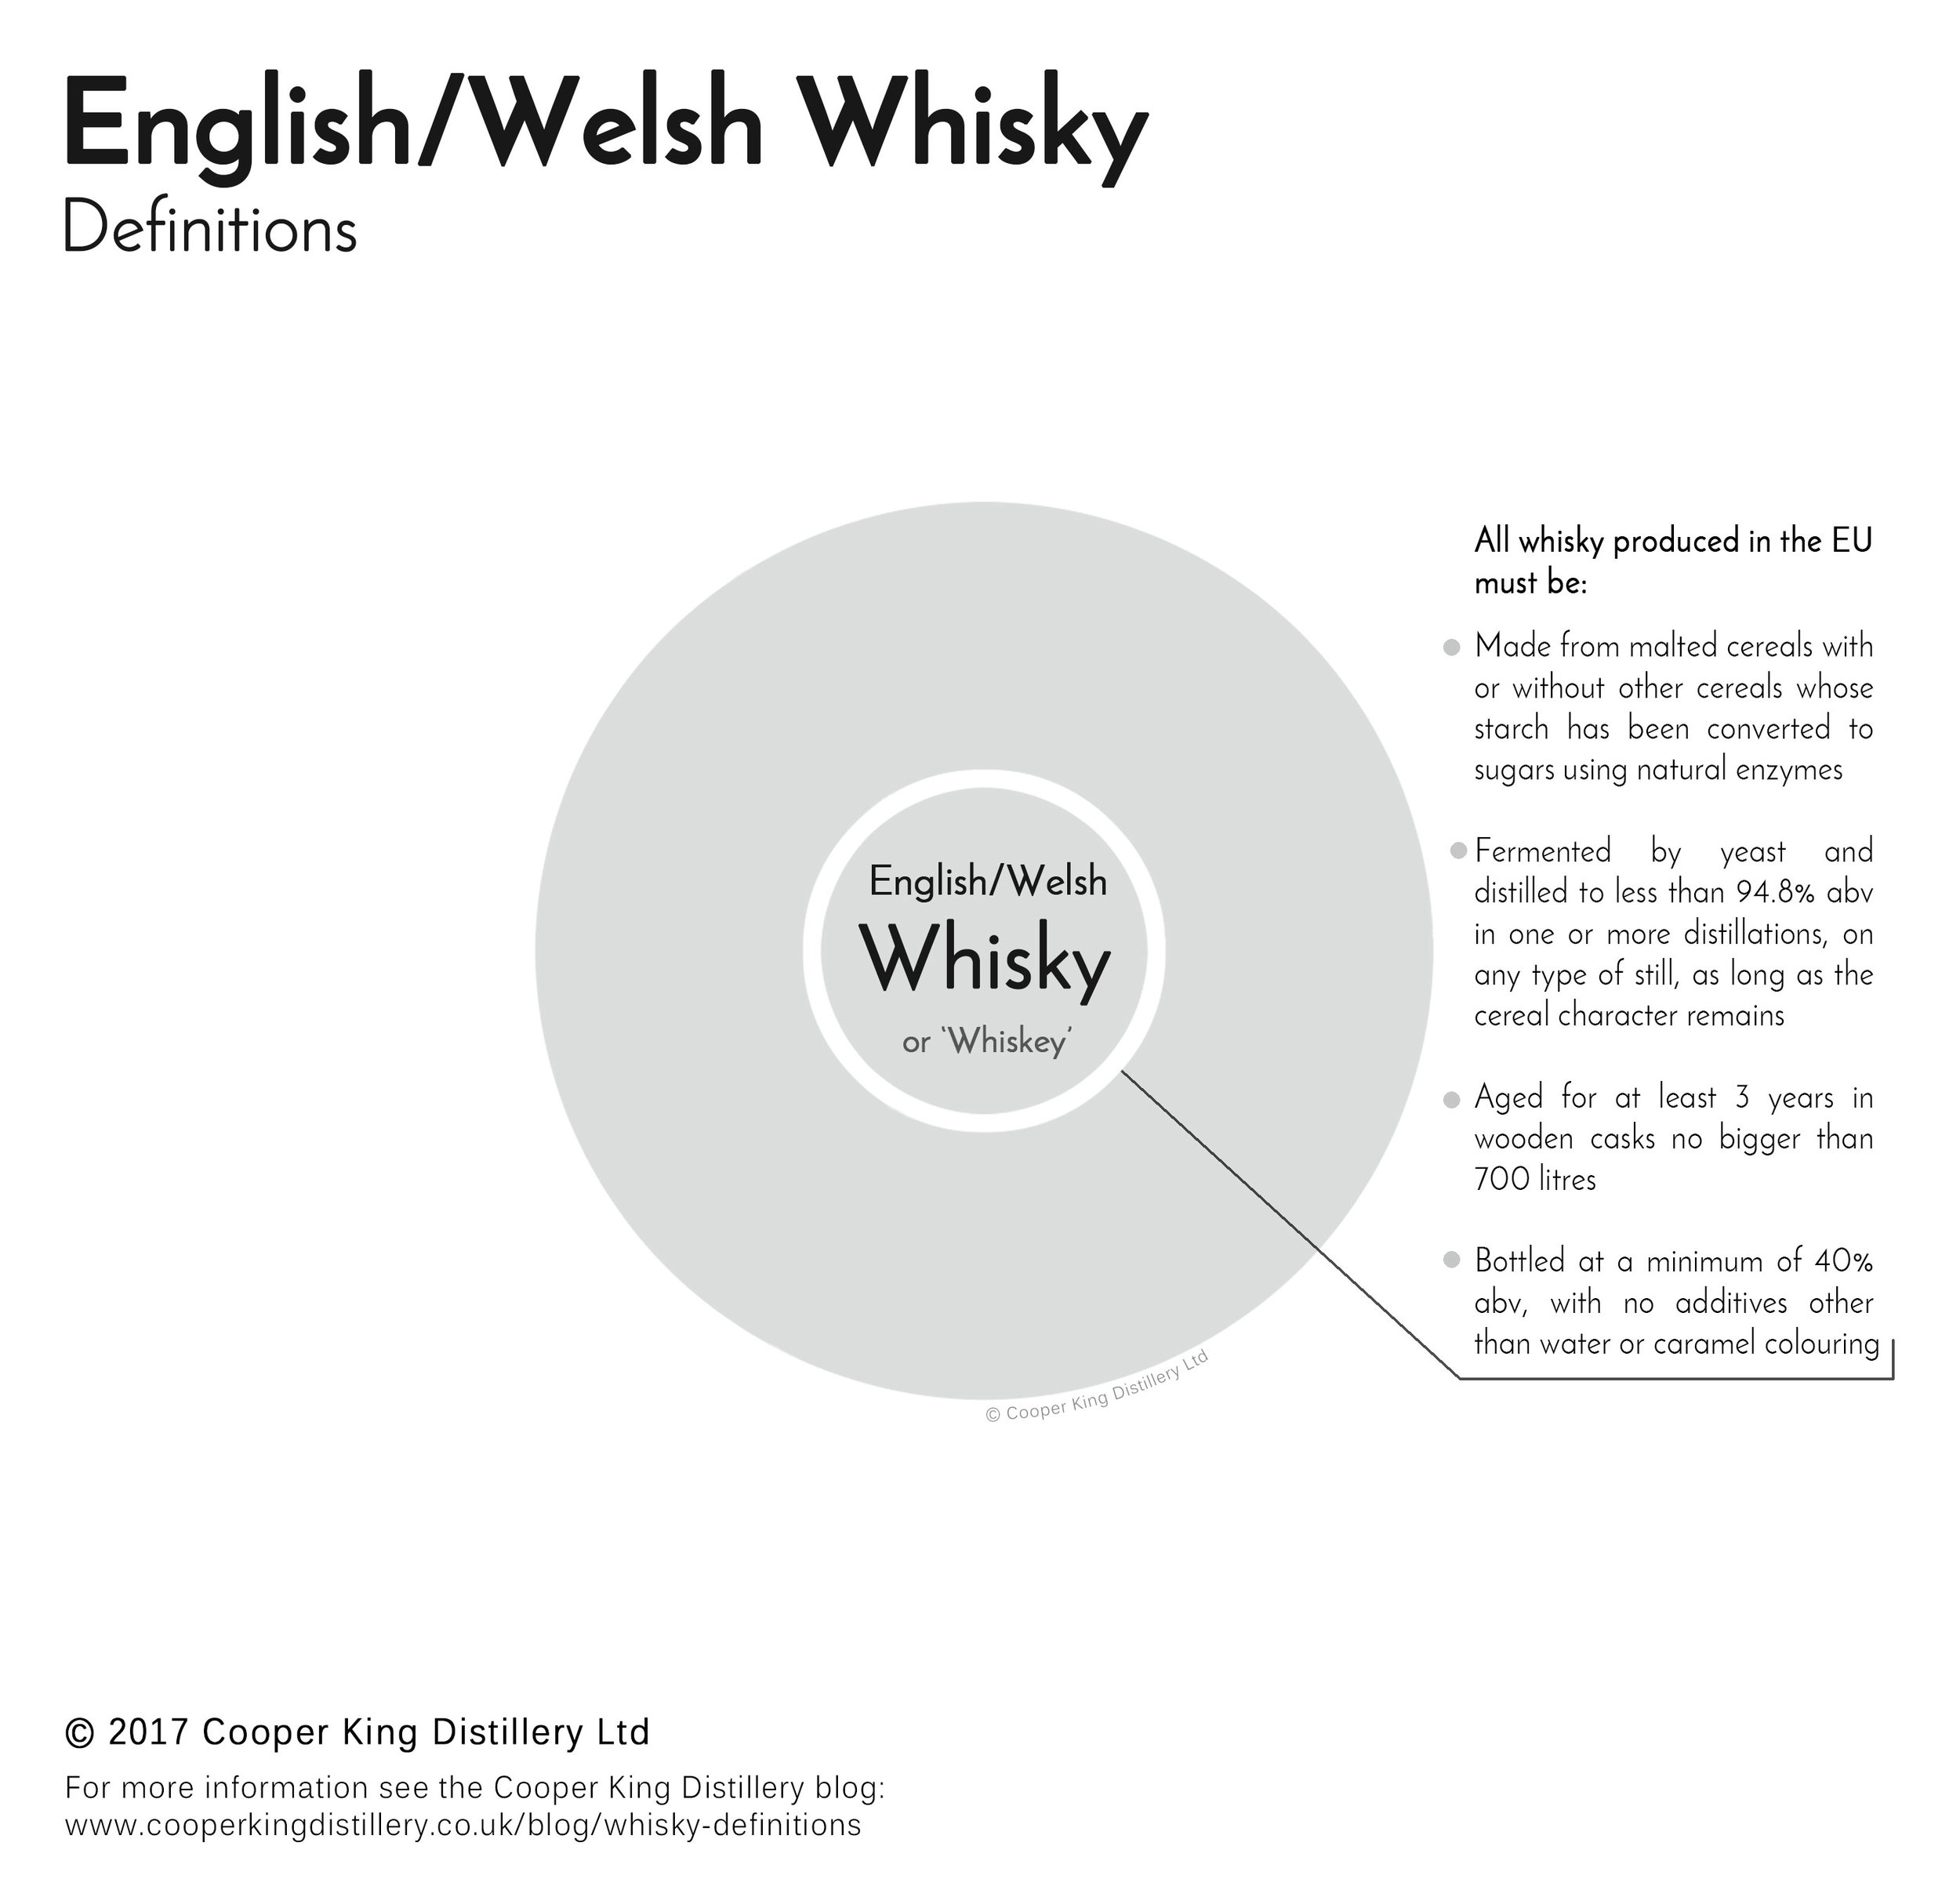 Click here for a full-sized image    of the   English/Welsh Whisky Definitions